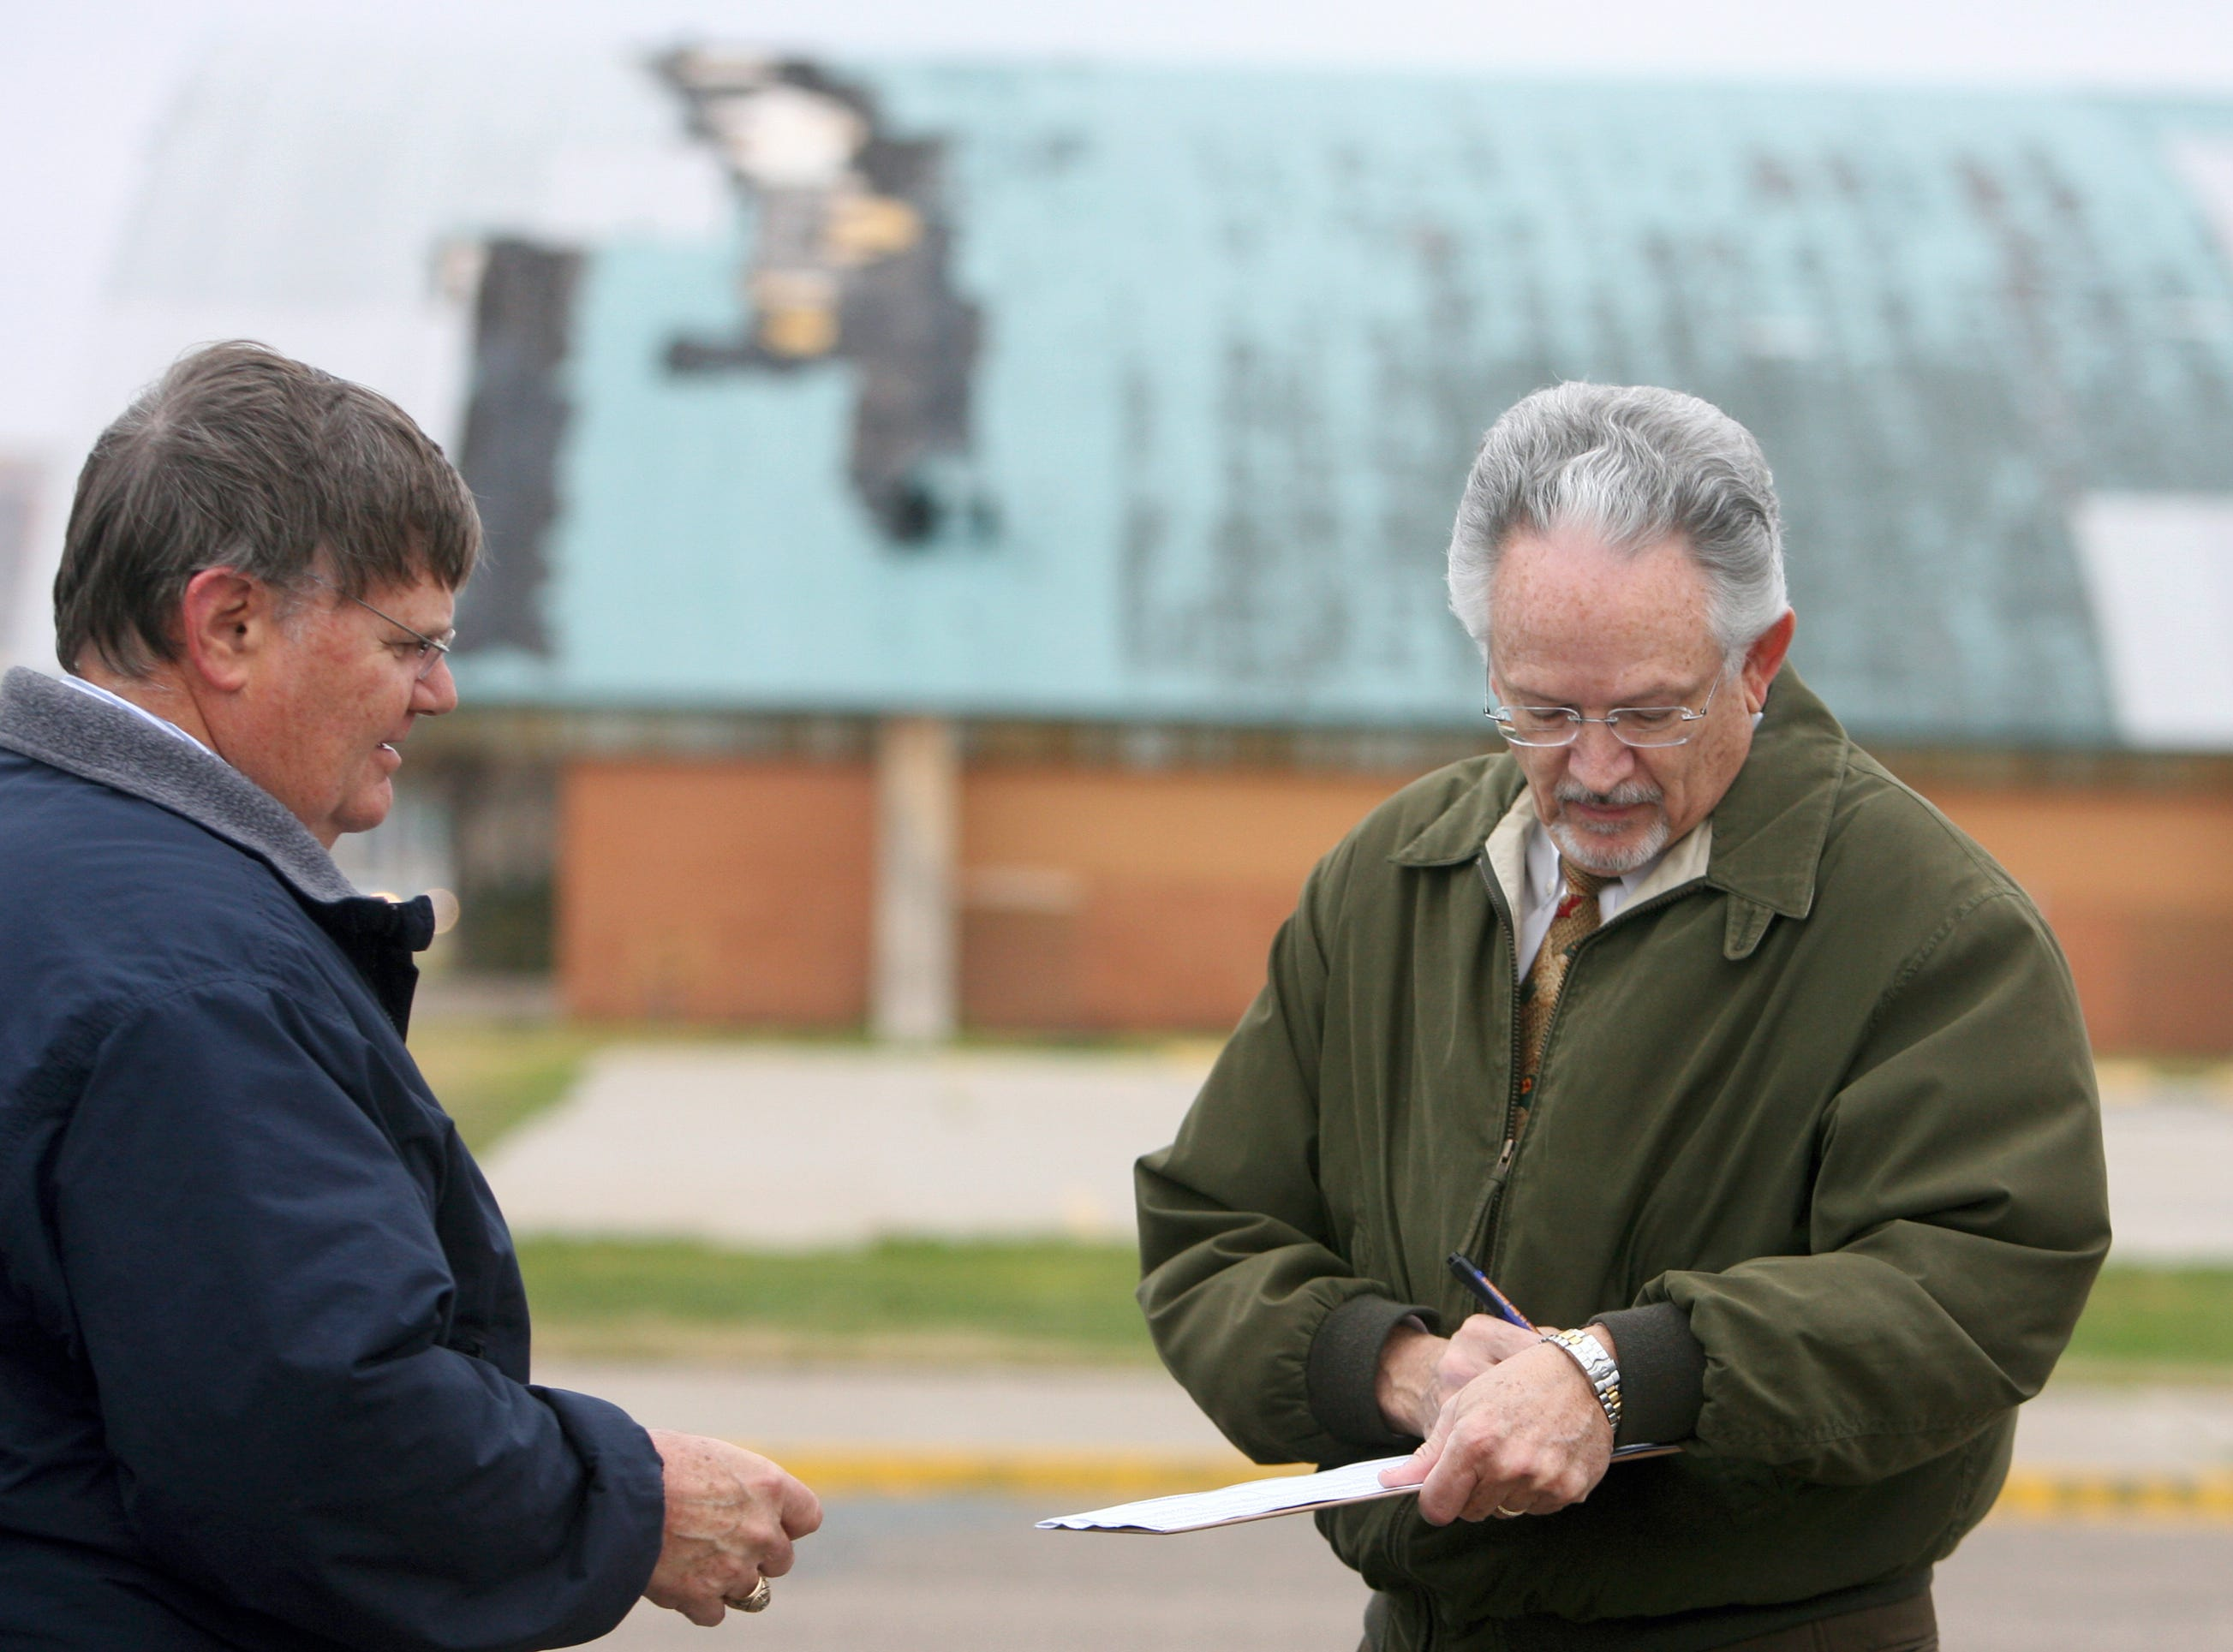 "Joe McComb (left) stands by as Cy Richards signs a petition in February 2009 in the parking lot of the Memorial Coliseum to place the issue of tearing down the coliseum to the voters of Corpus Christi. A former Councilman, McComb, who began the push to ""raze the hut,"" has until 5 pm Monday to collect 3,405 signatures to add to the 4,099 signatures that have already been verified by the city secretary. The total number of signatures required to place the issue on the ballot is 7,504."